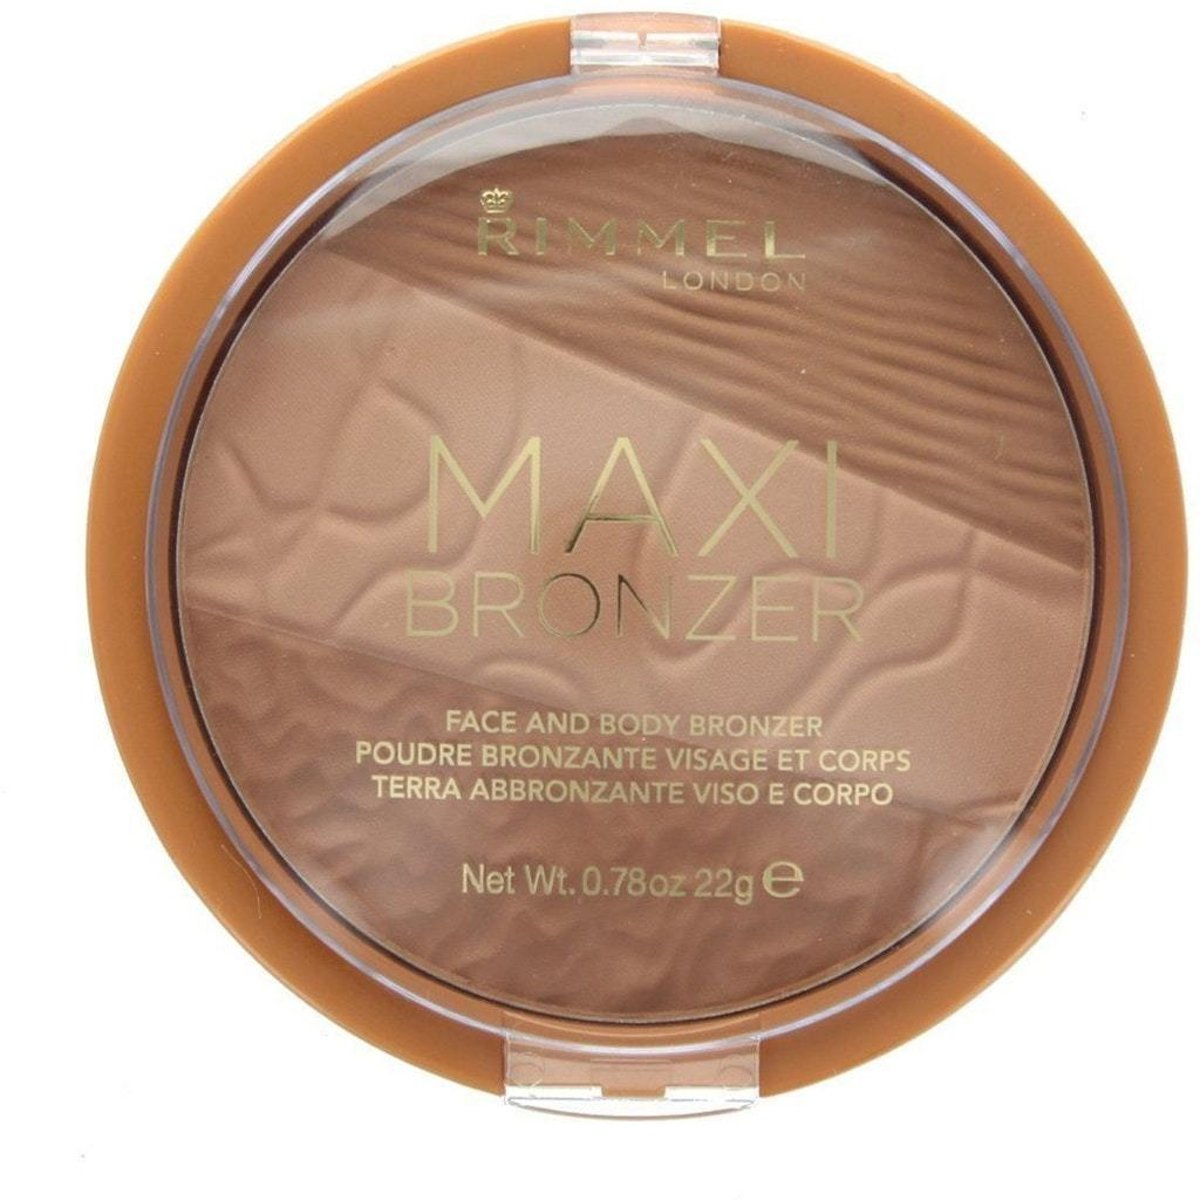 Rimmel Maxi Bronzer Face and Body Bronzing Powder